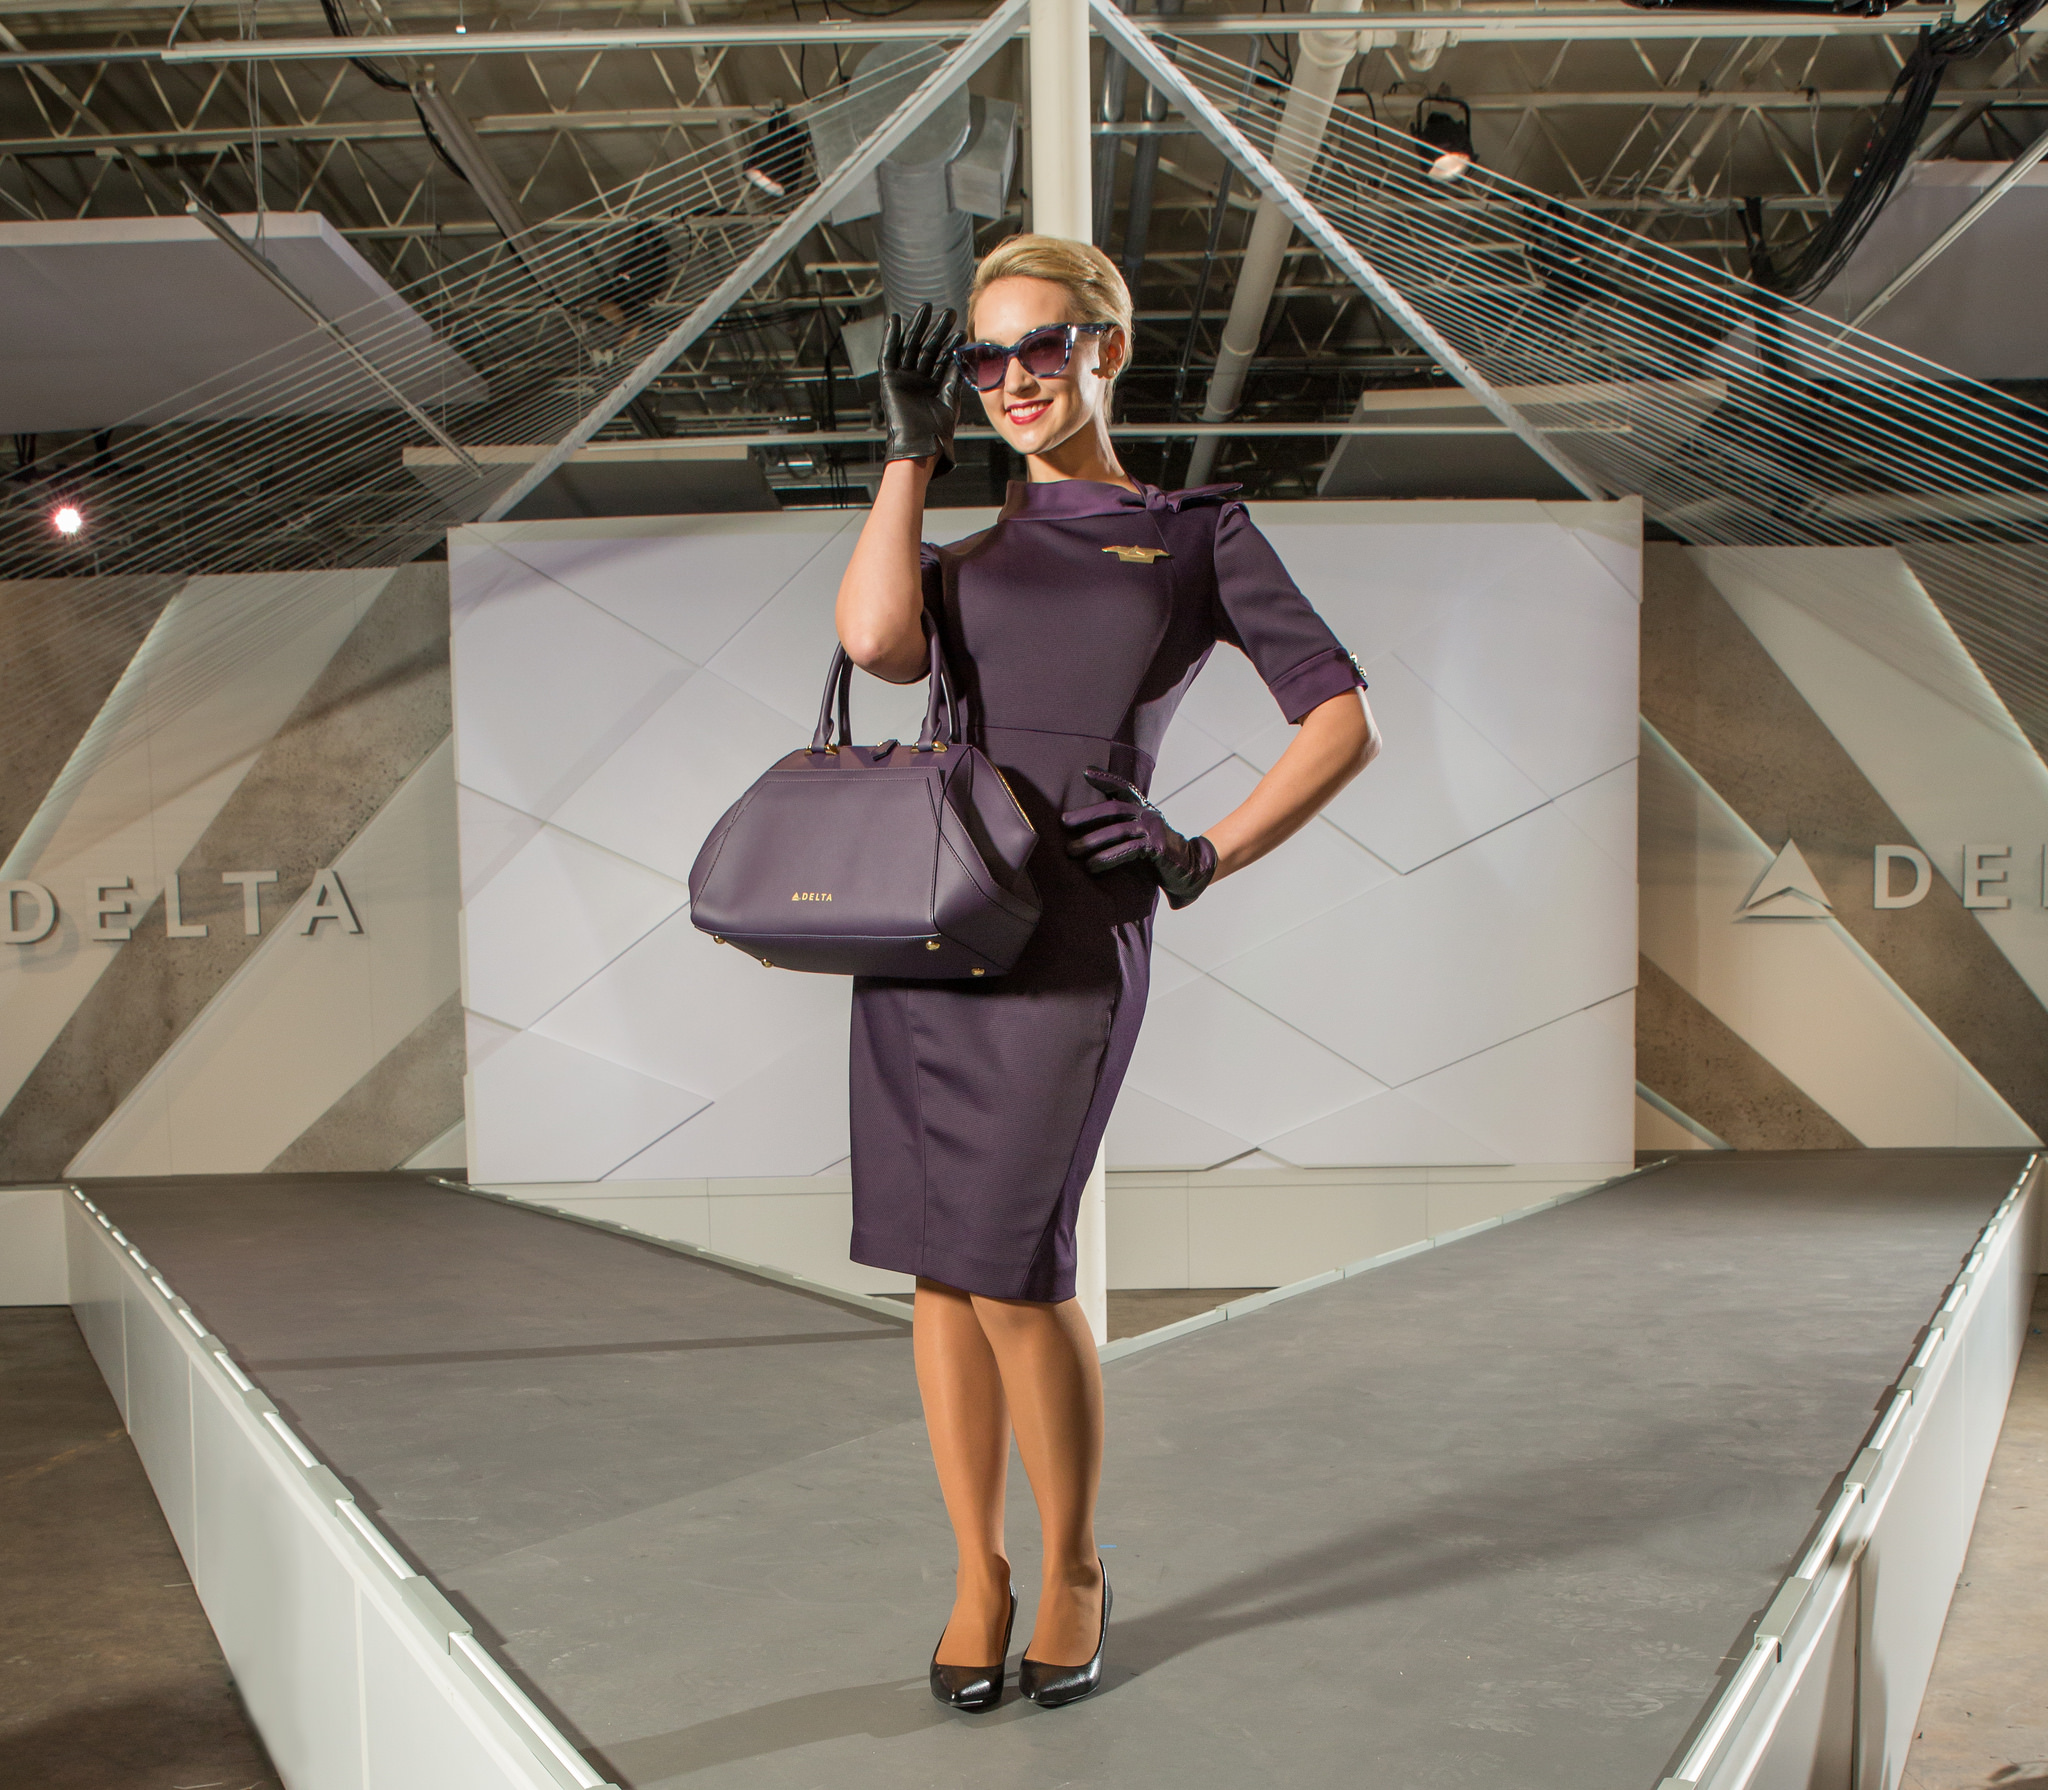 Delta Zac Posen flight attendant uniform